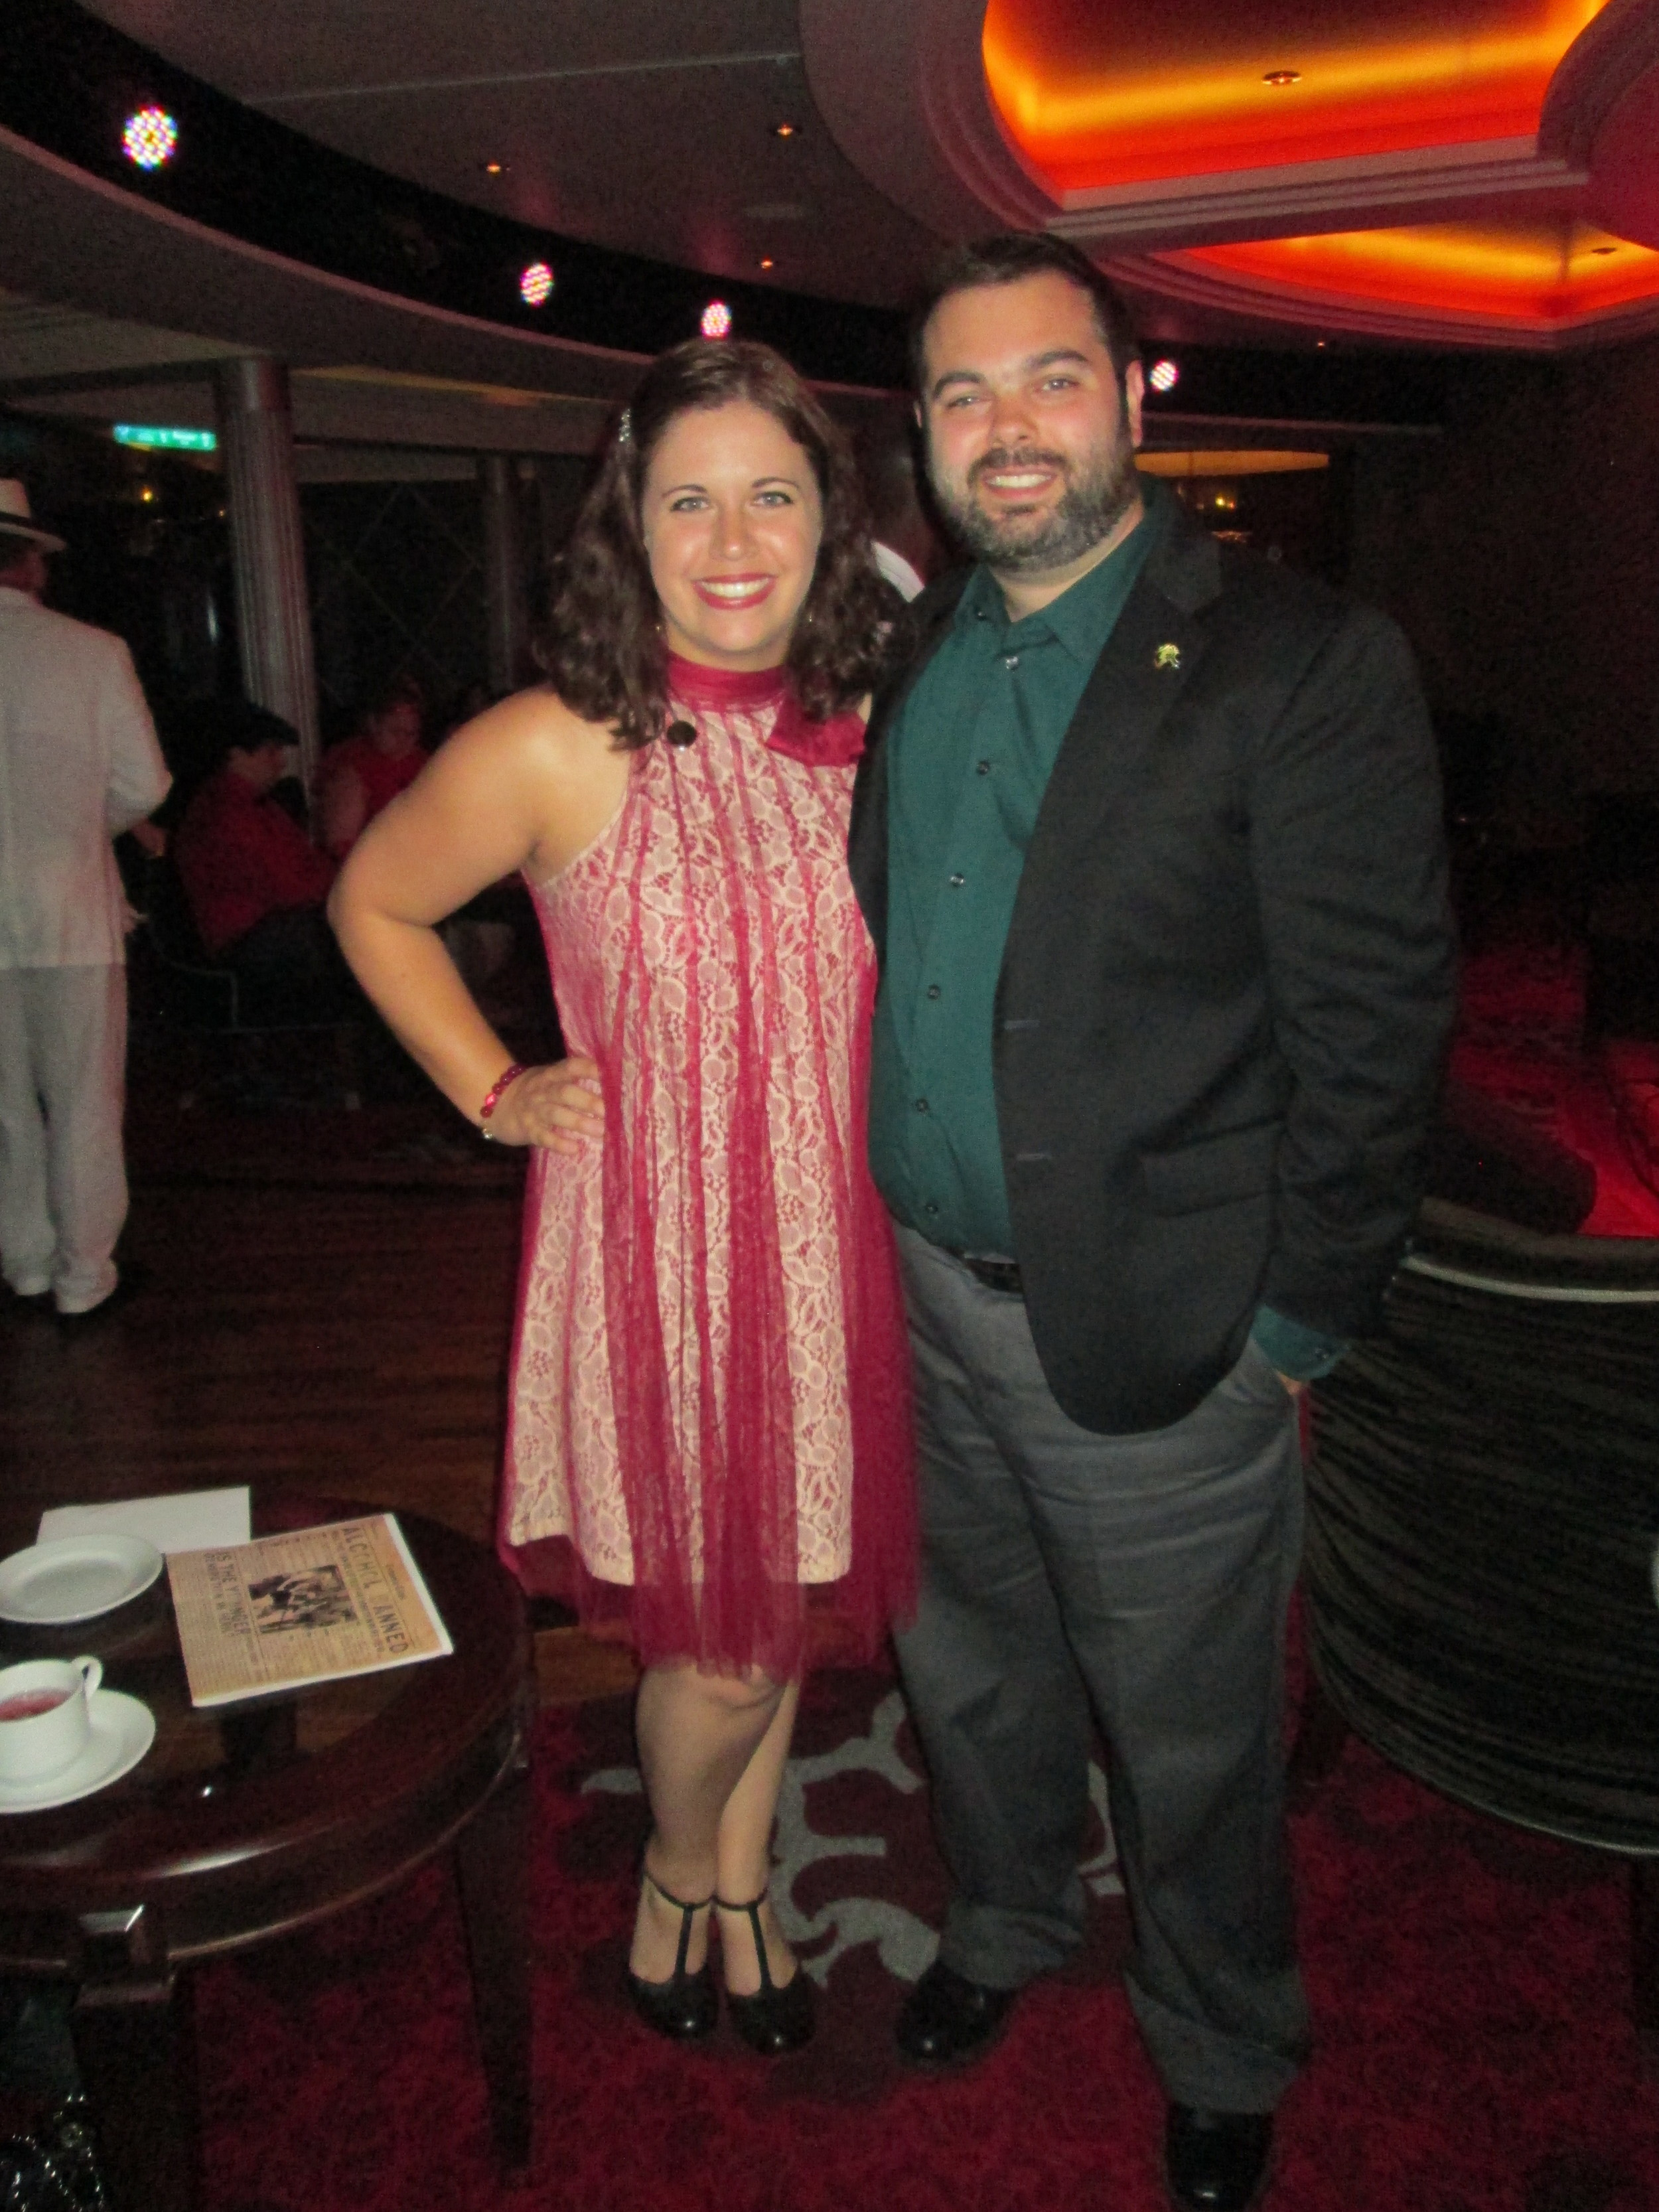 My husband, Nathan, and I at the Prohibition Event. We got decked out in 20's garb and had a blast!